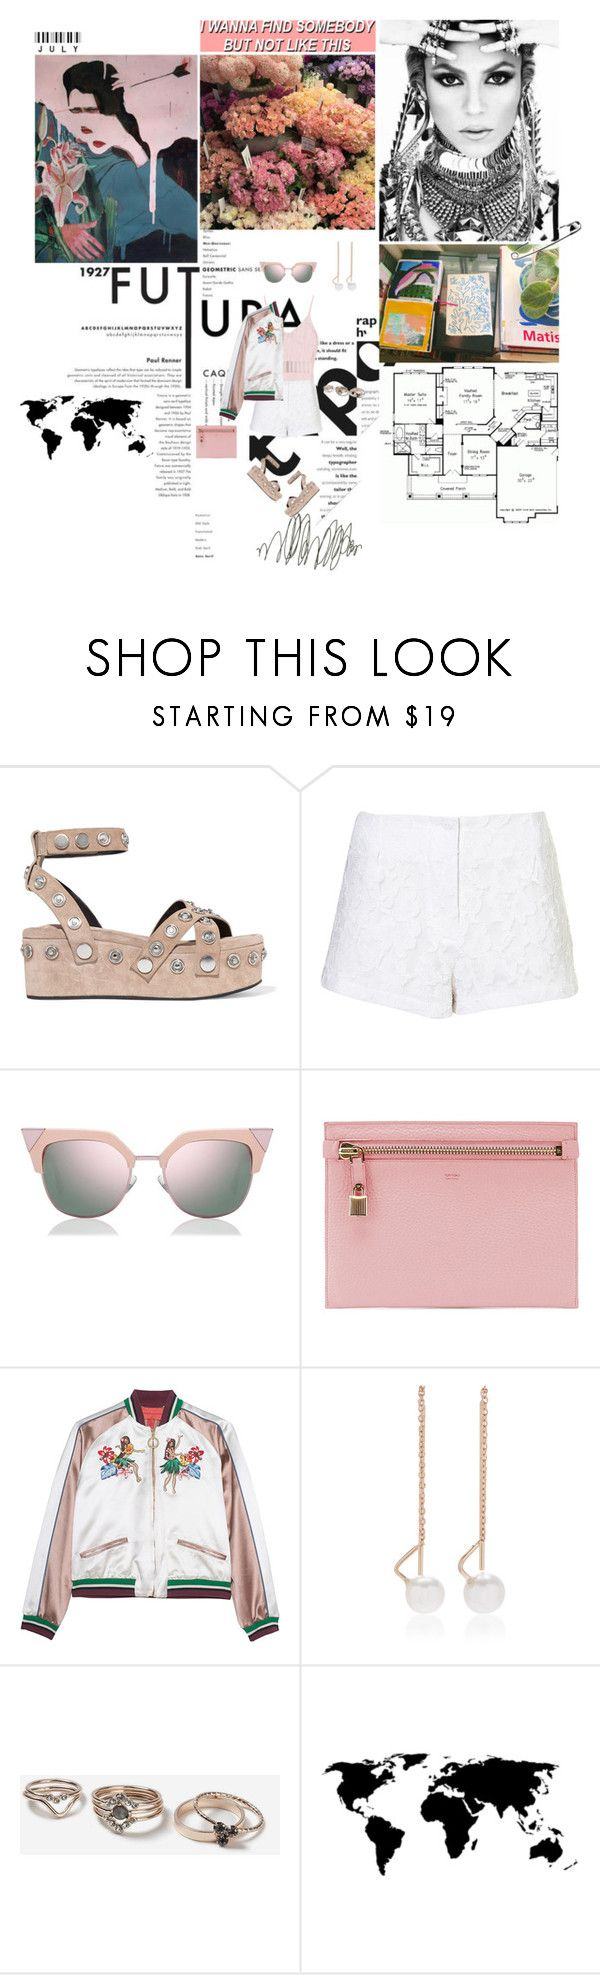 """""""I wanna find somebody, but not like this."""" by miky94 ❤ liked on Polyvore featuring Behance, Alexander Wang, Rare London, Fendi, Tom Ford, Hilfiger Collection, White/Space and Topshop"""